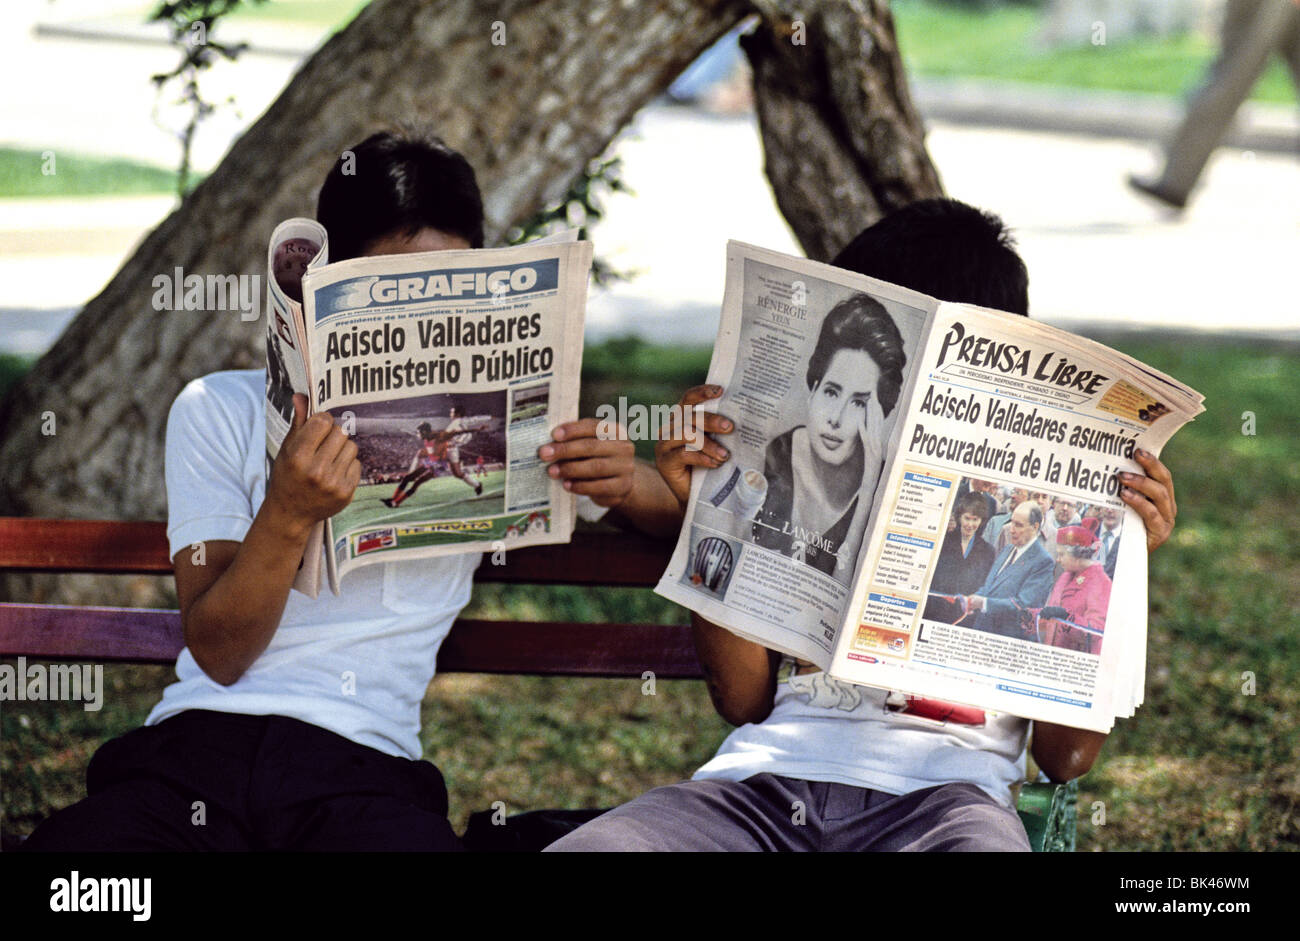 Prensa Libre Guatemala Two People Reading The Prensa Libre And Grafico Newspapers Stock